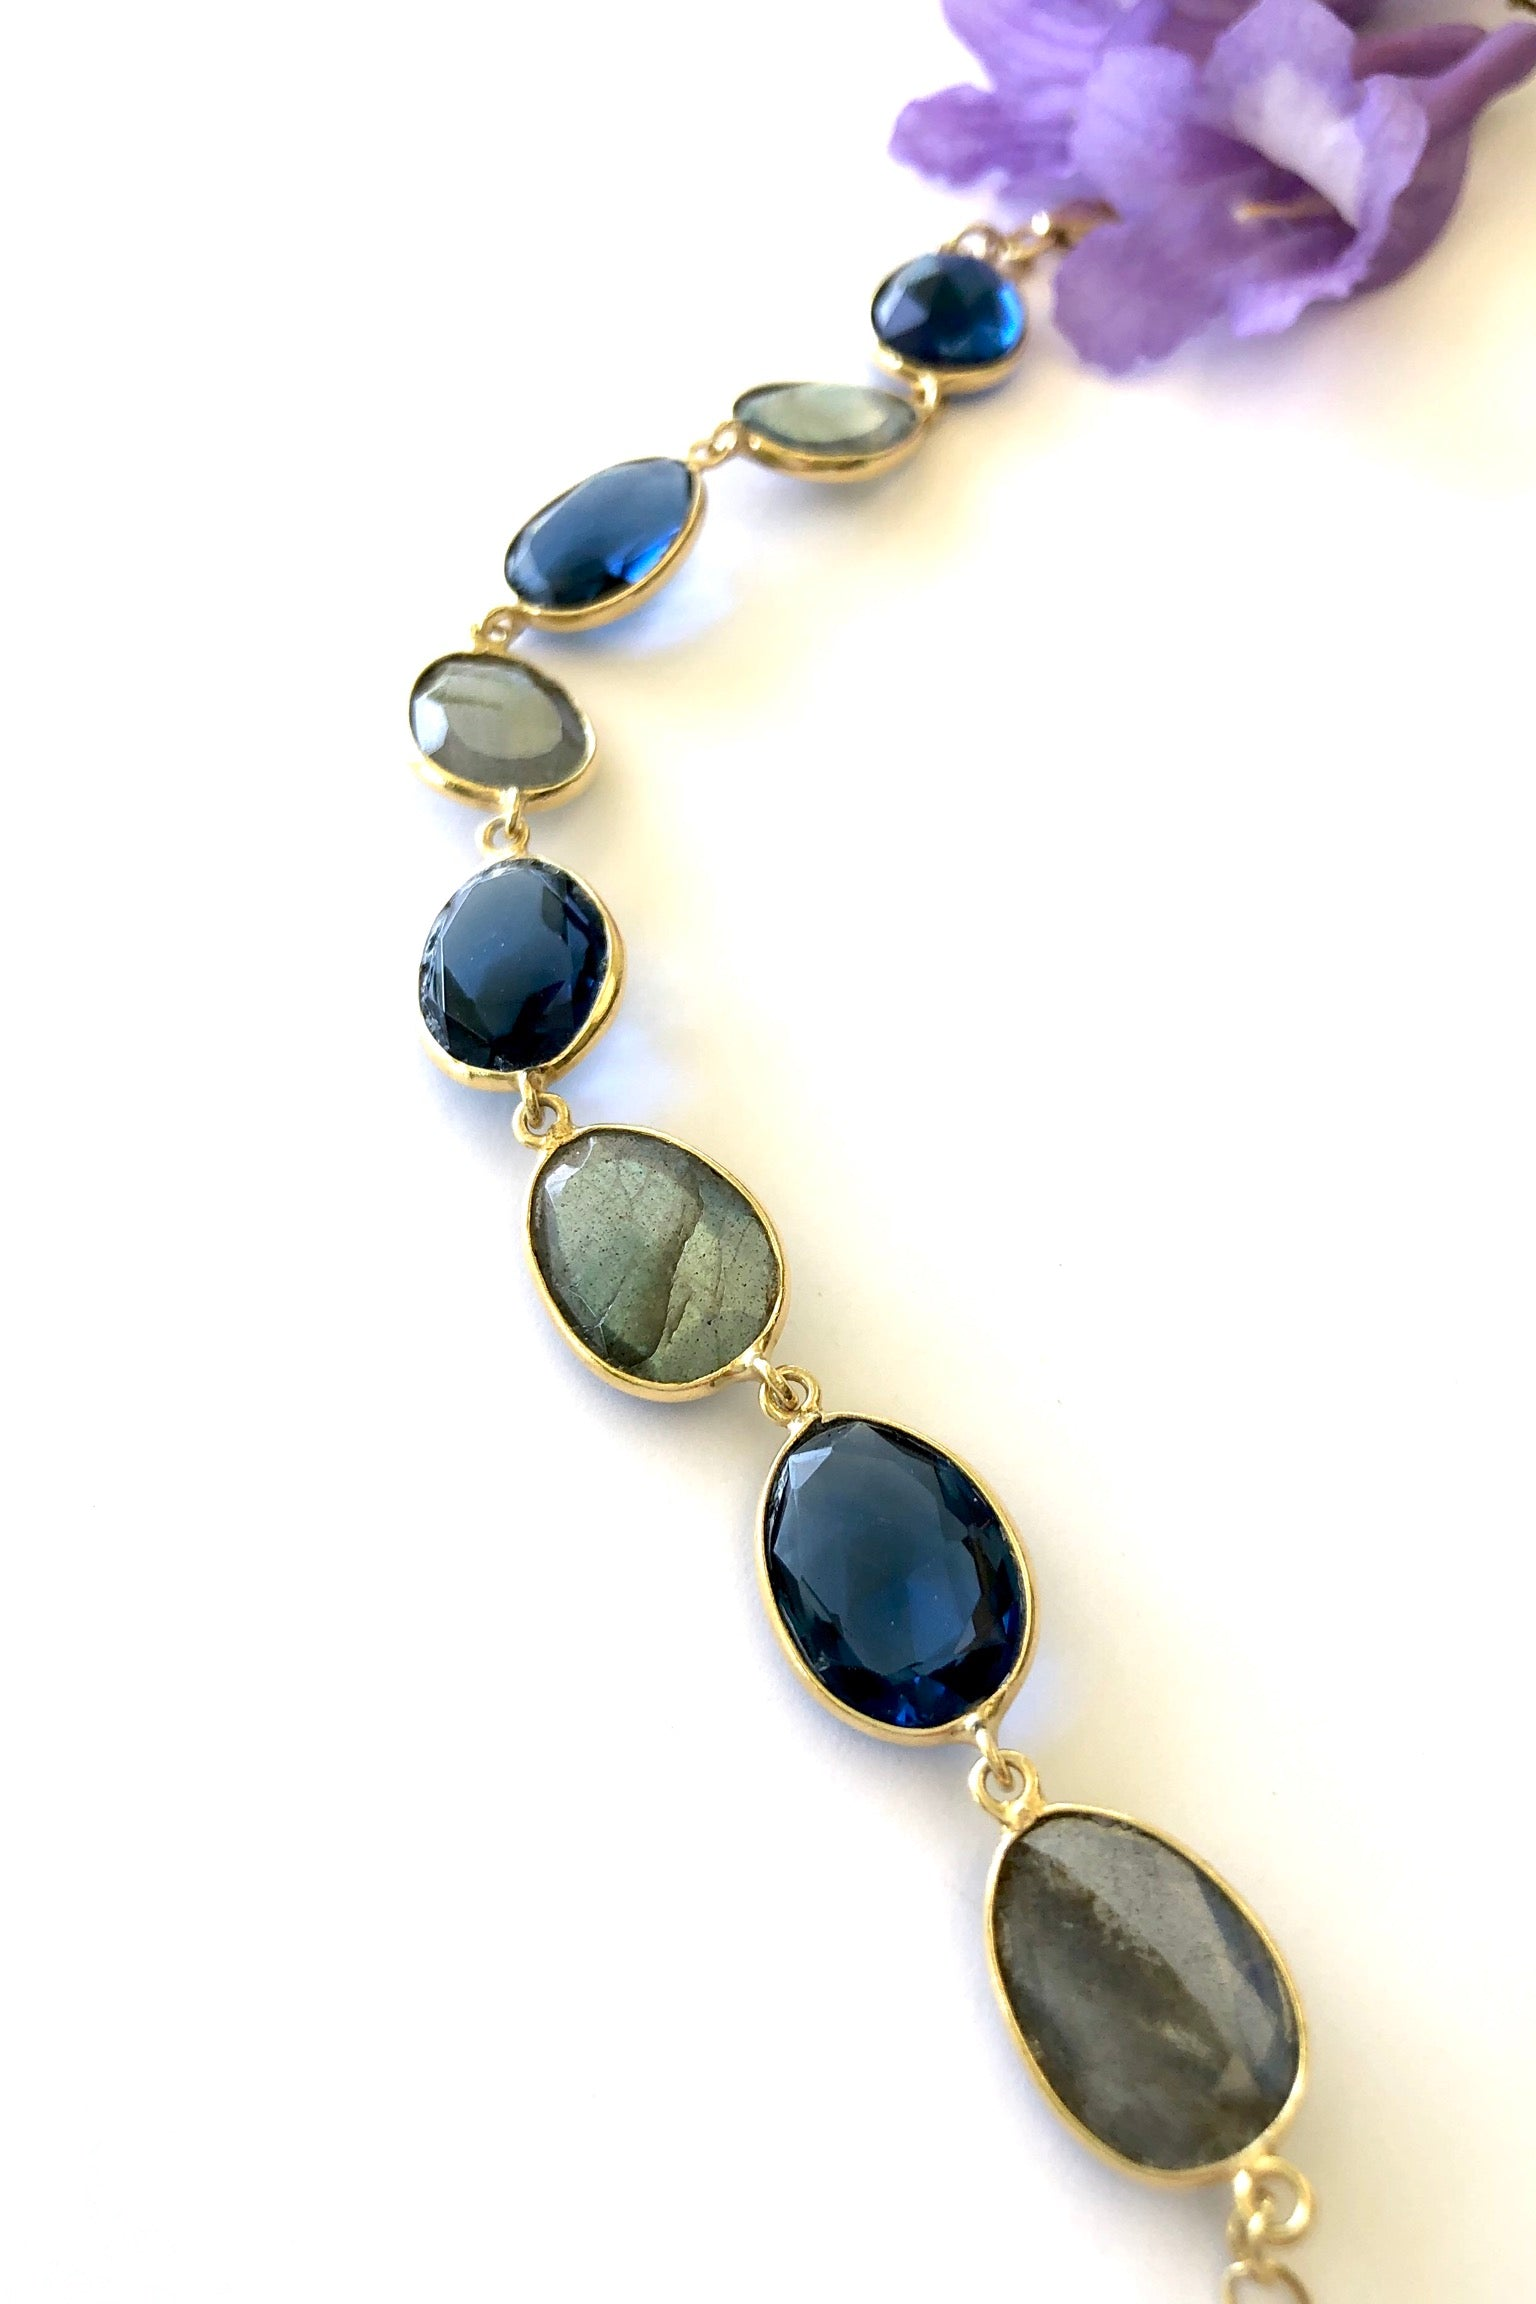 gemstone Labradorite bracelet set in gold